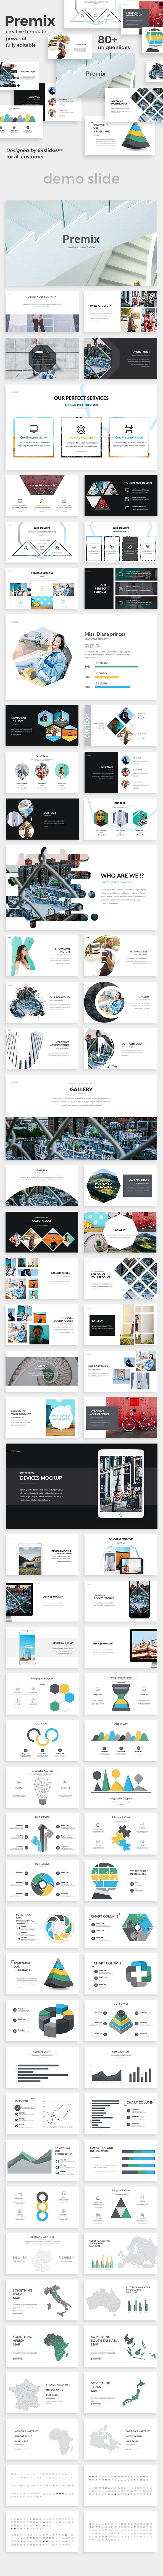 Premix Creative Powerpoint Template - Creative PowerPoint Templates